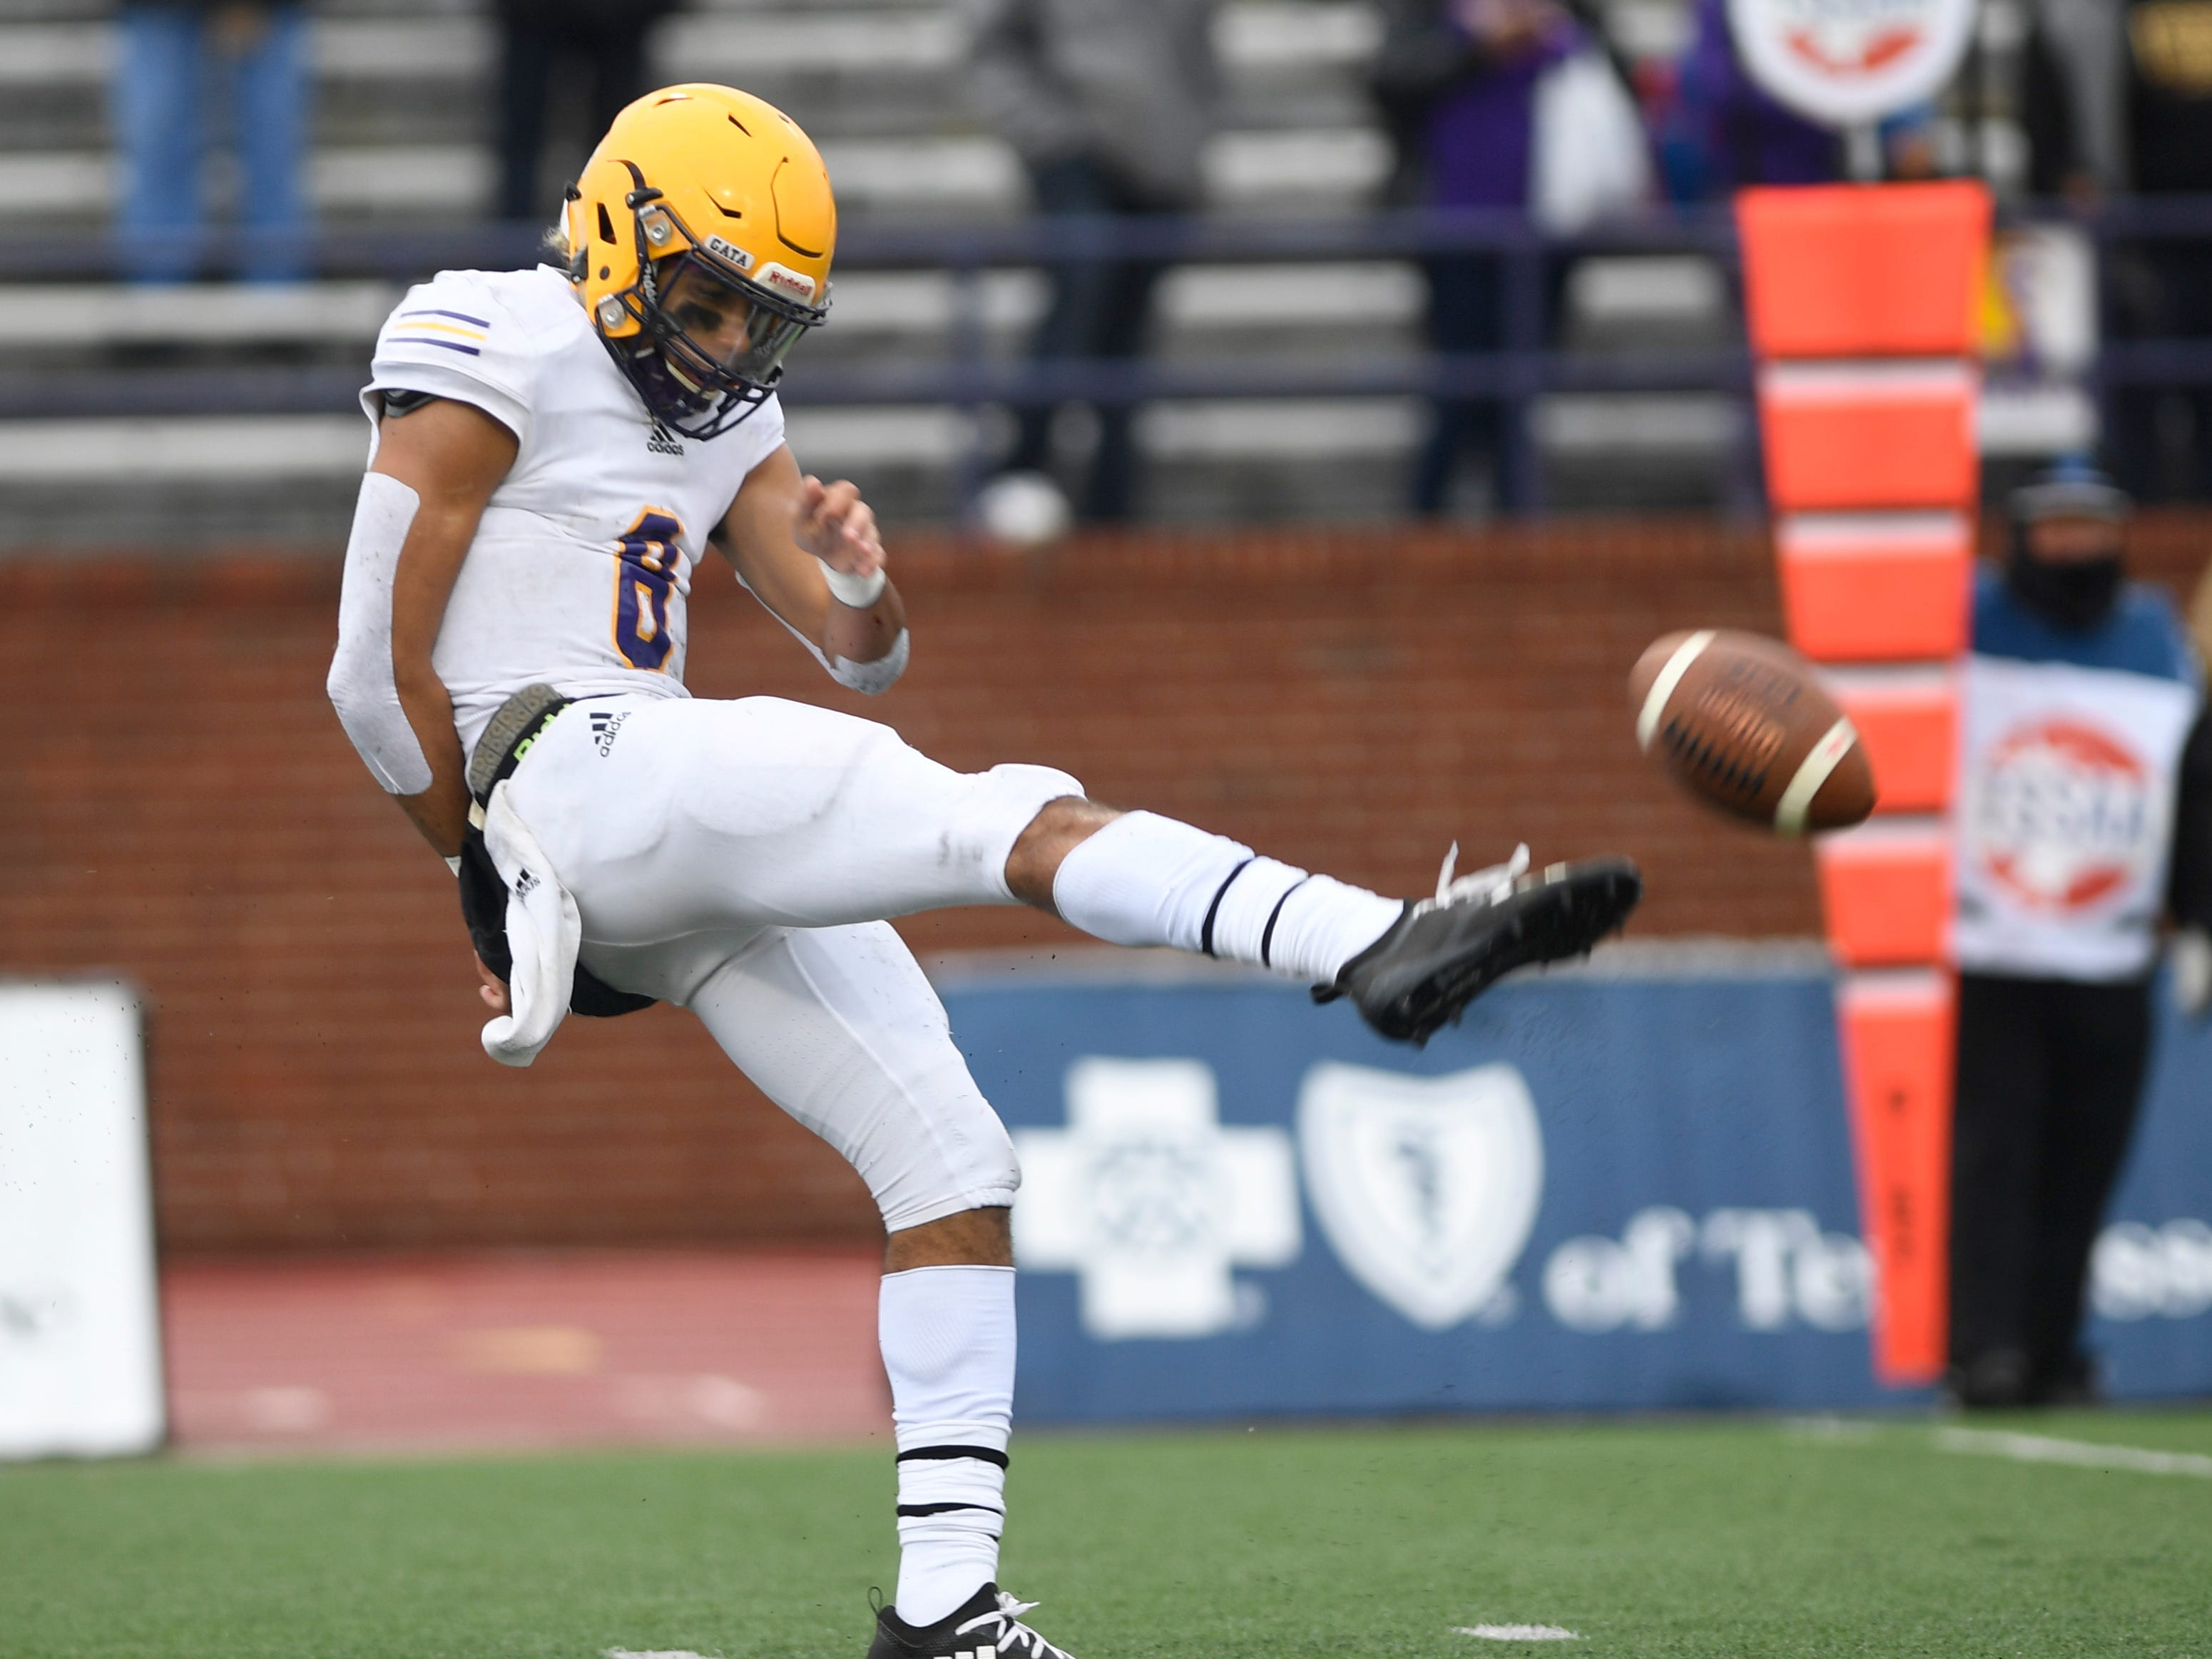 Trousdale County punter Keyvont Baines gets off a kick during the Class 2A BlueCross Bowl state championship at Tennessee Tech's Tucker Stadium in Cookeville, Tenn., on Thursday, Nov. 29, 2018.